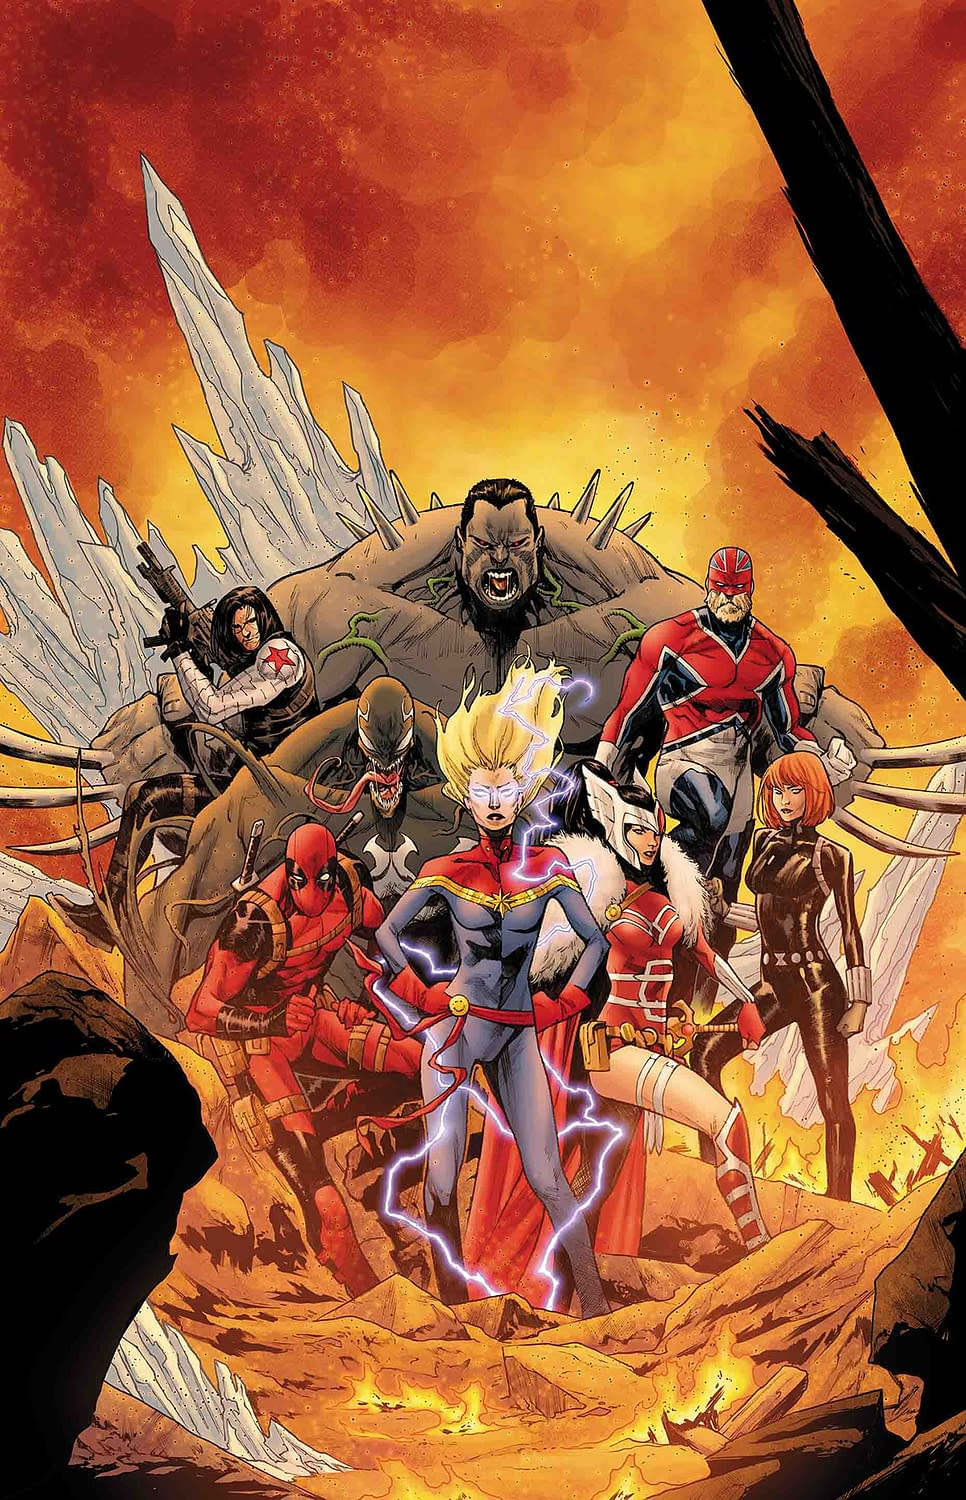 Deadpool Takes Jumping the Shark to the Next Level - War of the Realms: Strikeforce: War Avengers #1 Preview